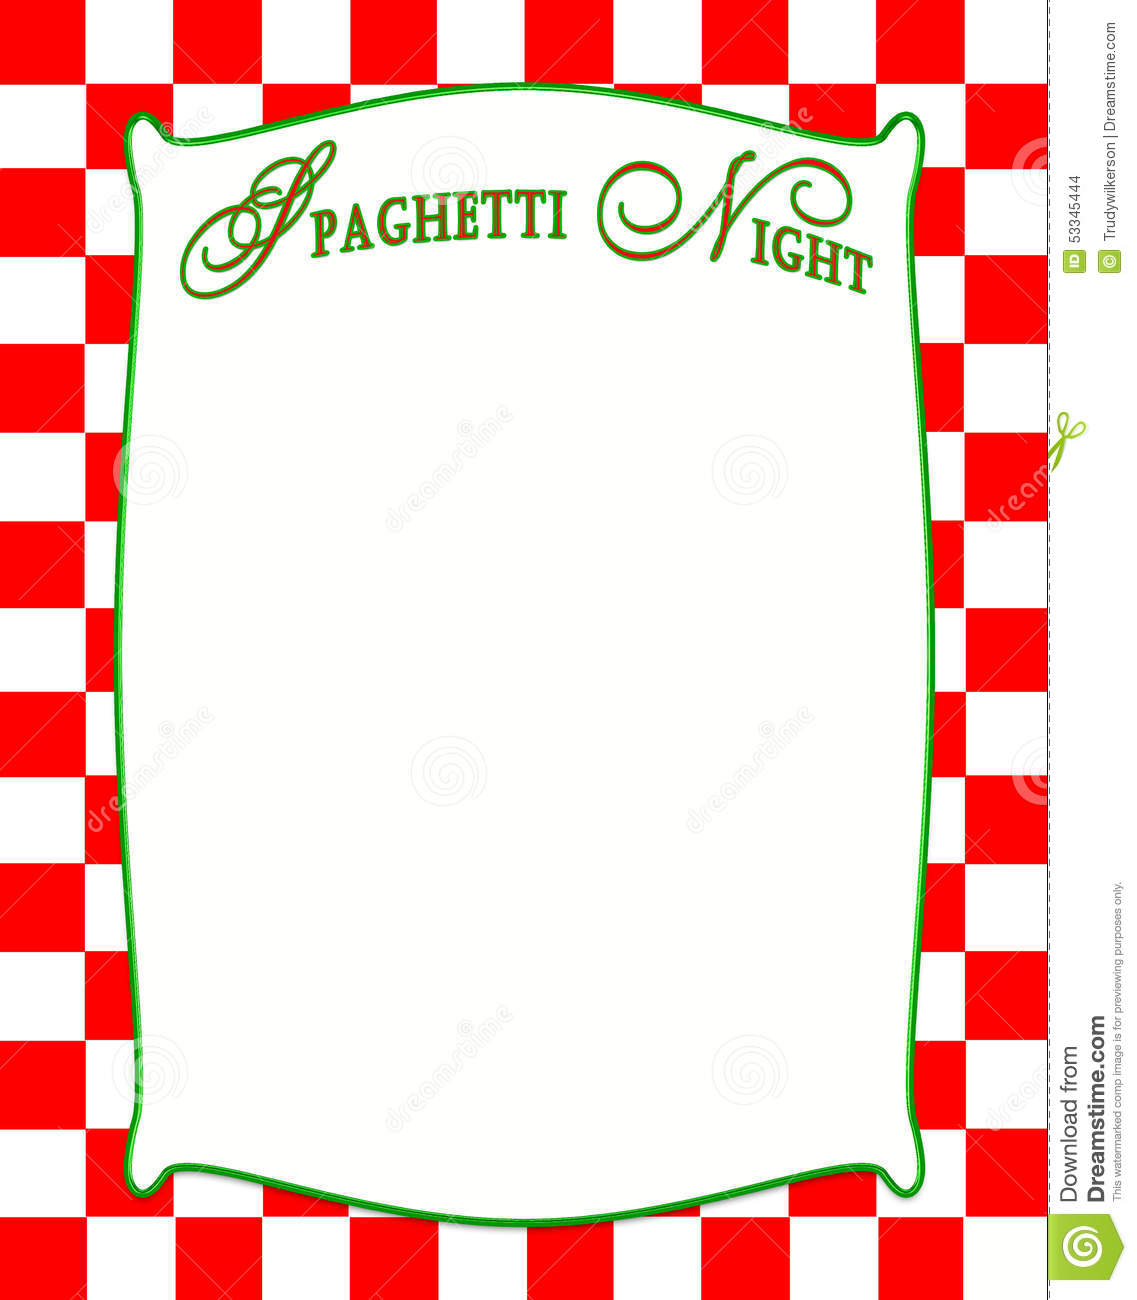 Spaghetti Night Background In Red Checkered Pattern Stock.